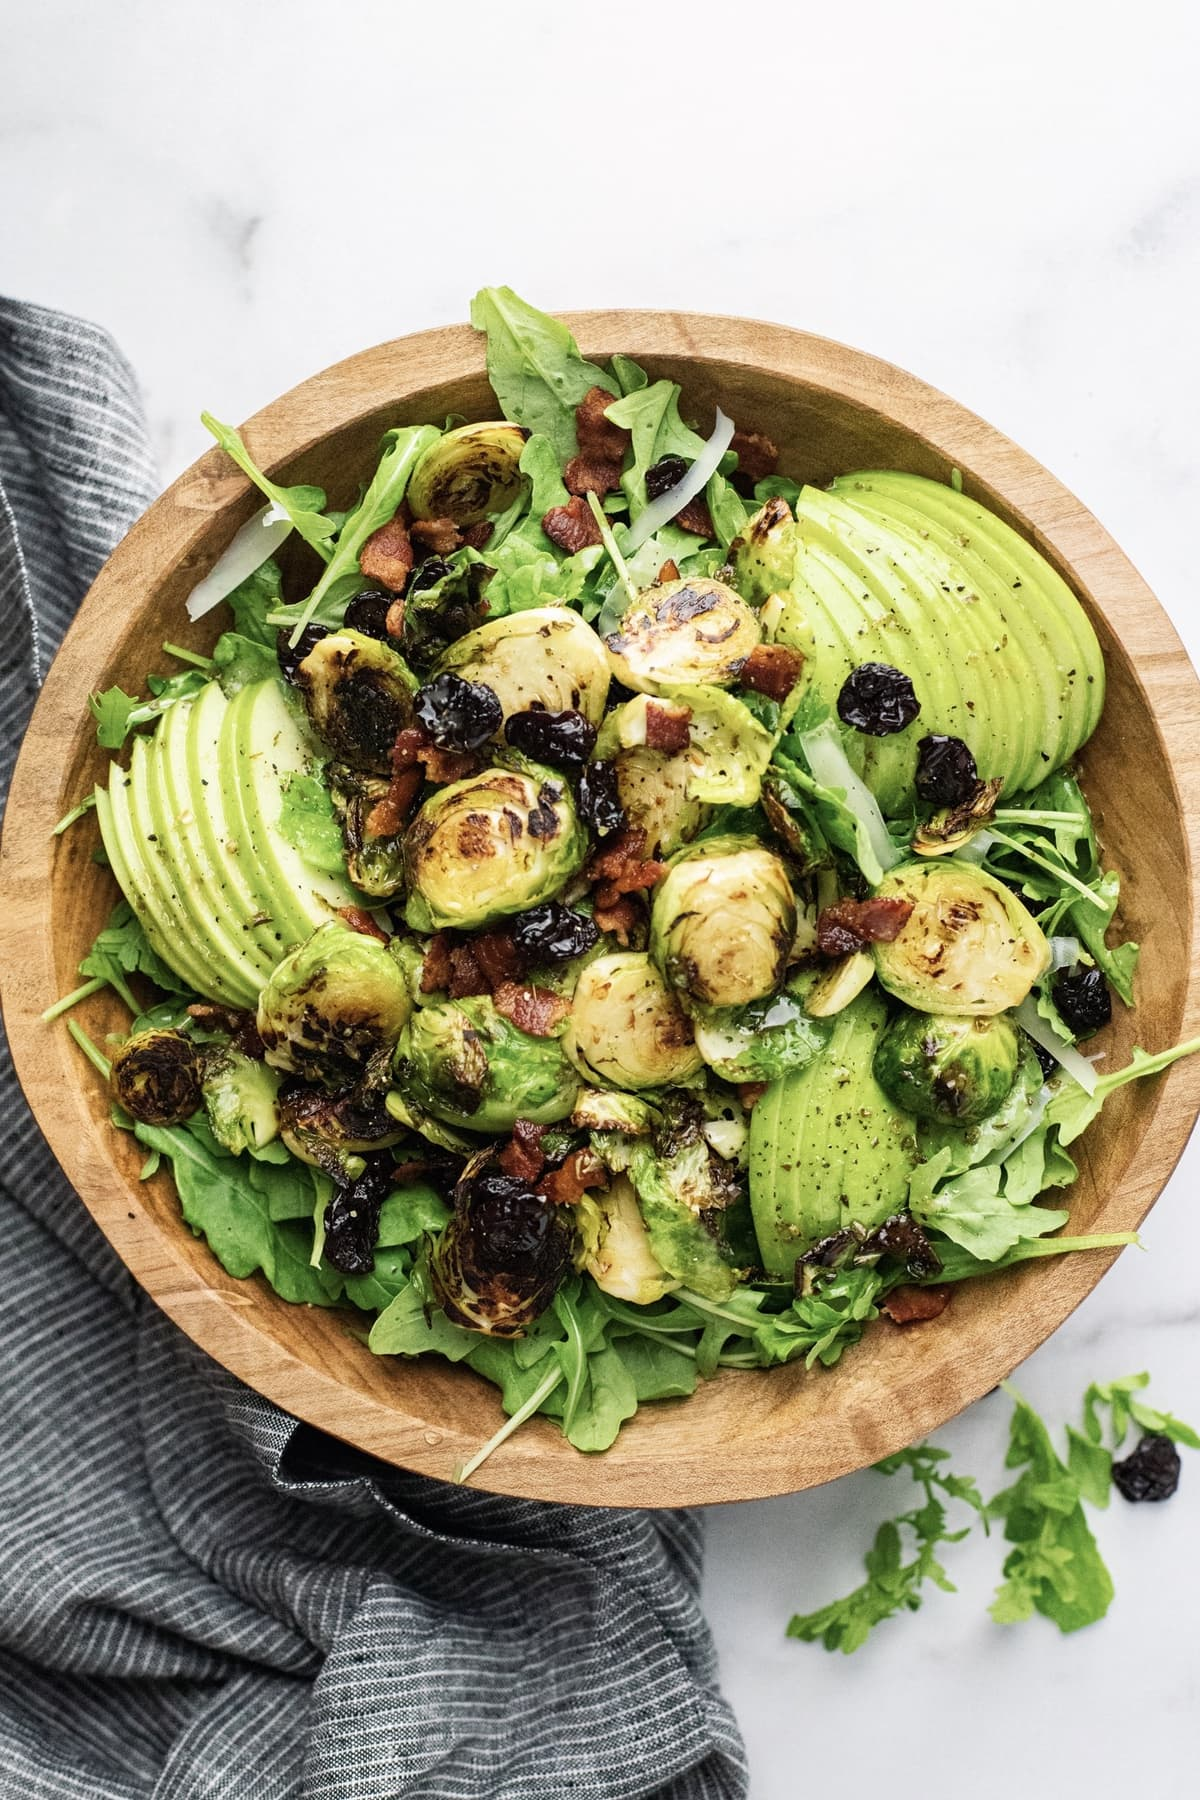 A wooden bowl filled with salad, green apples, and cooked brussels sprouts on top.